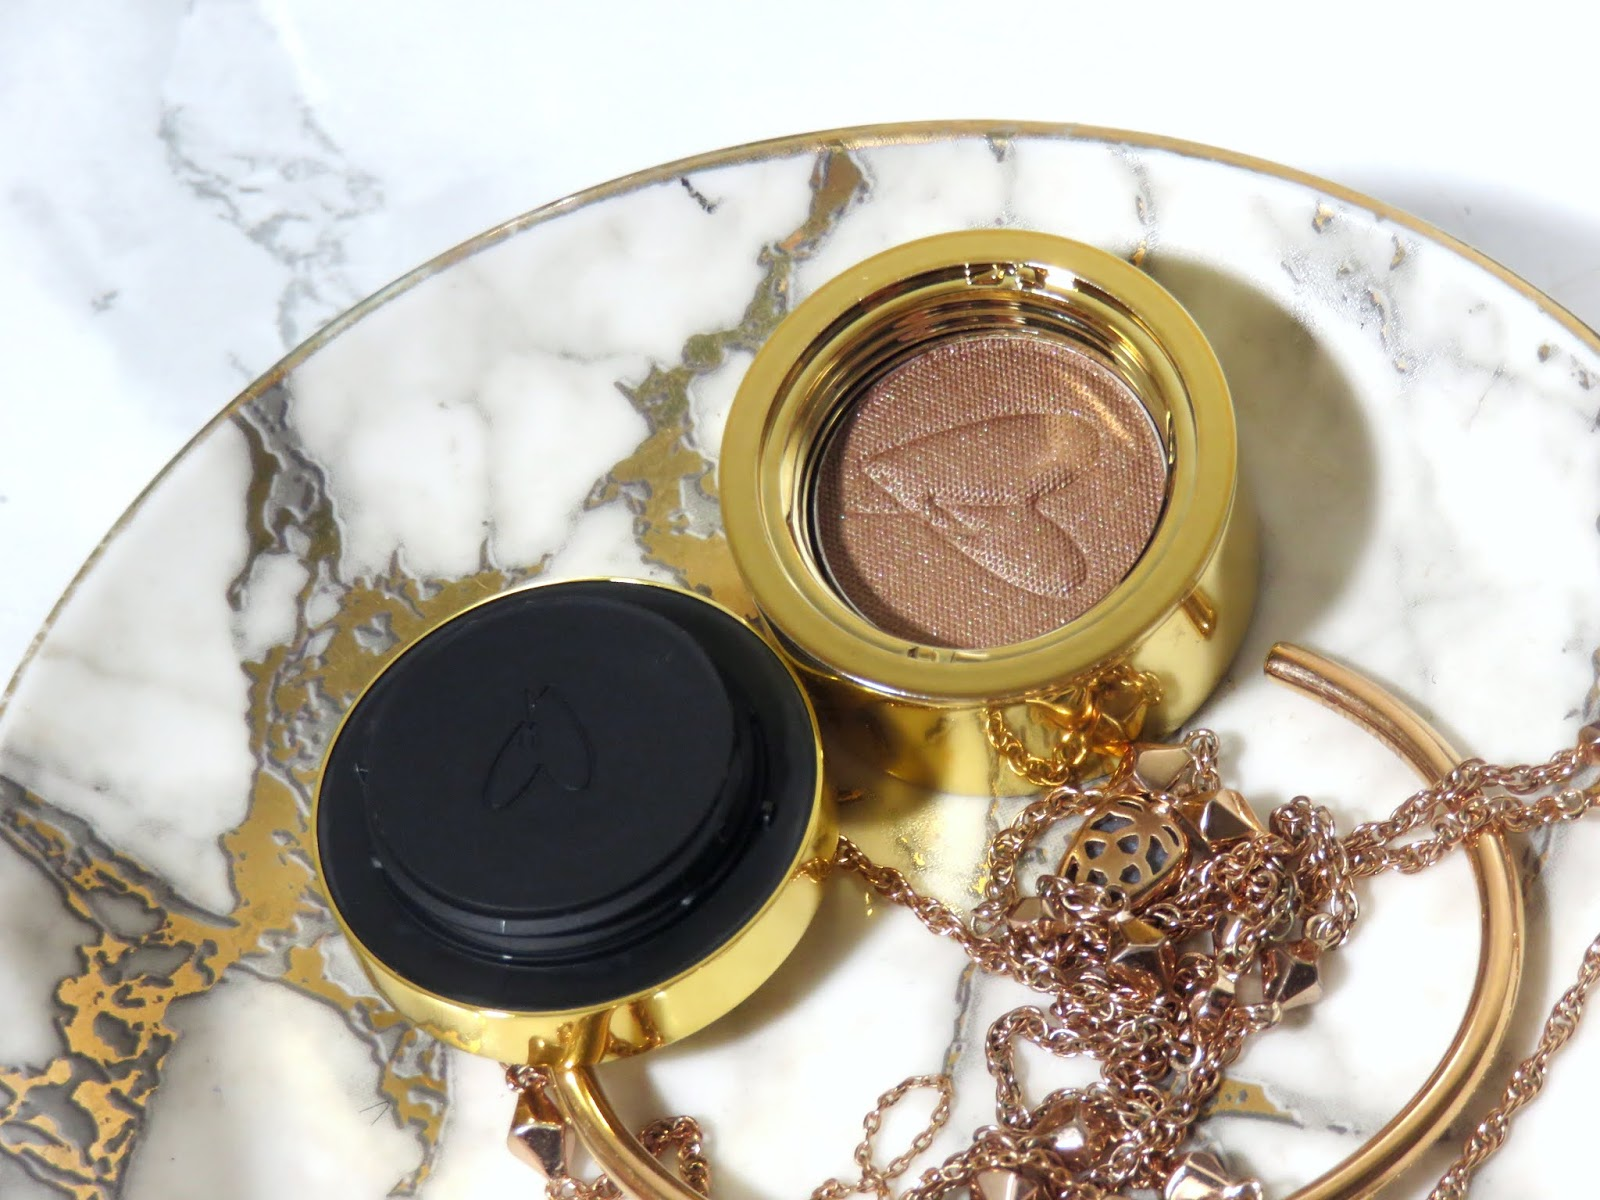 Westman Atelier Eye Pods in Les Jours Review and Swatches